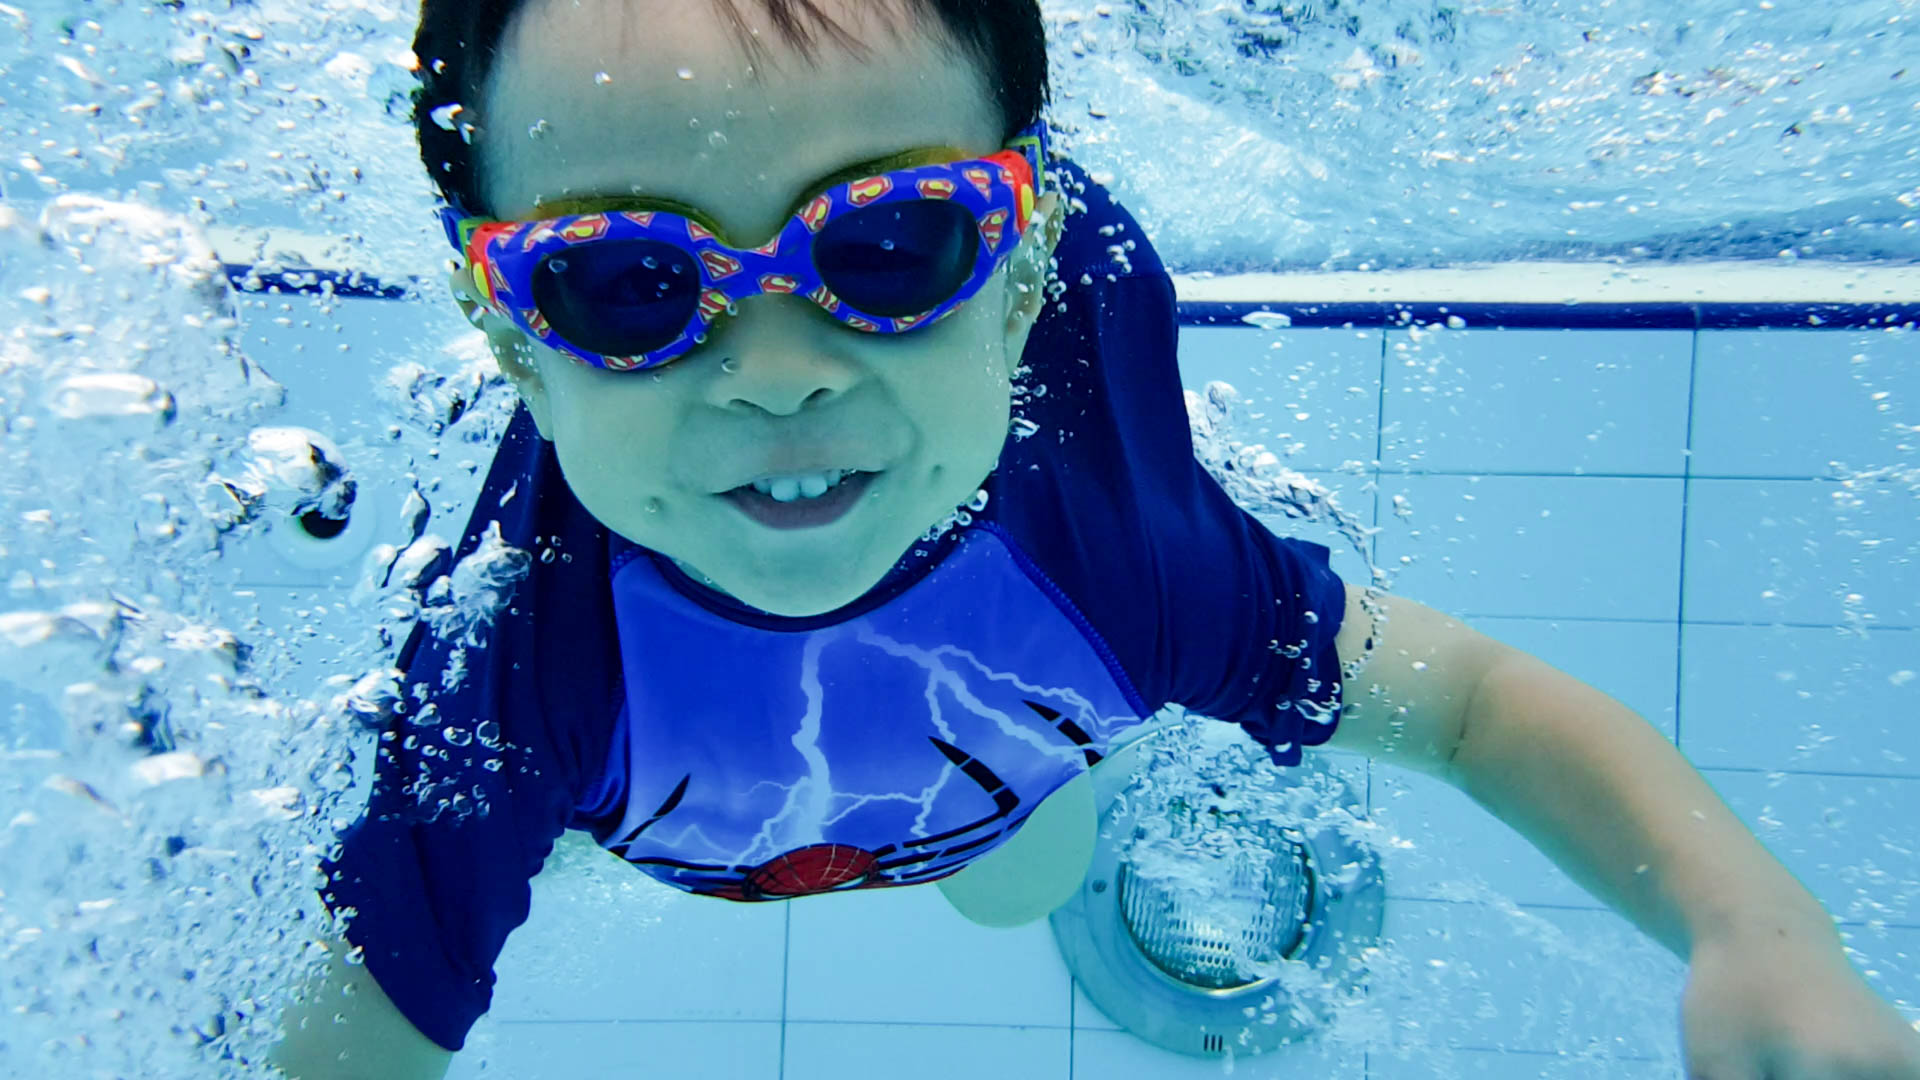 Toddler blowing bubbles during swimming lessons